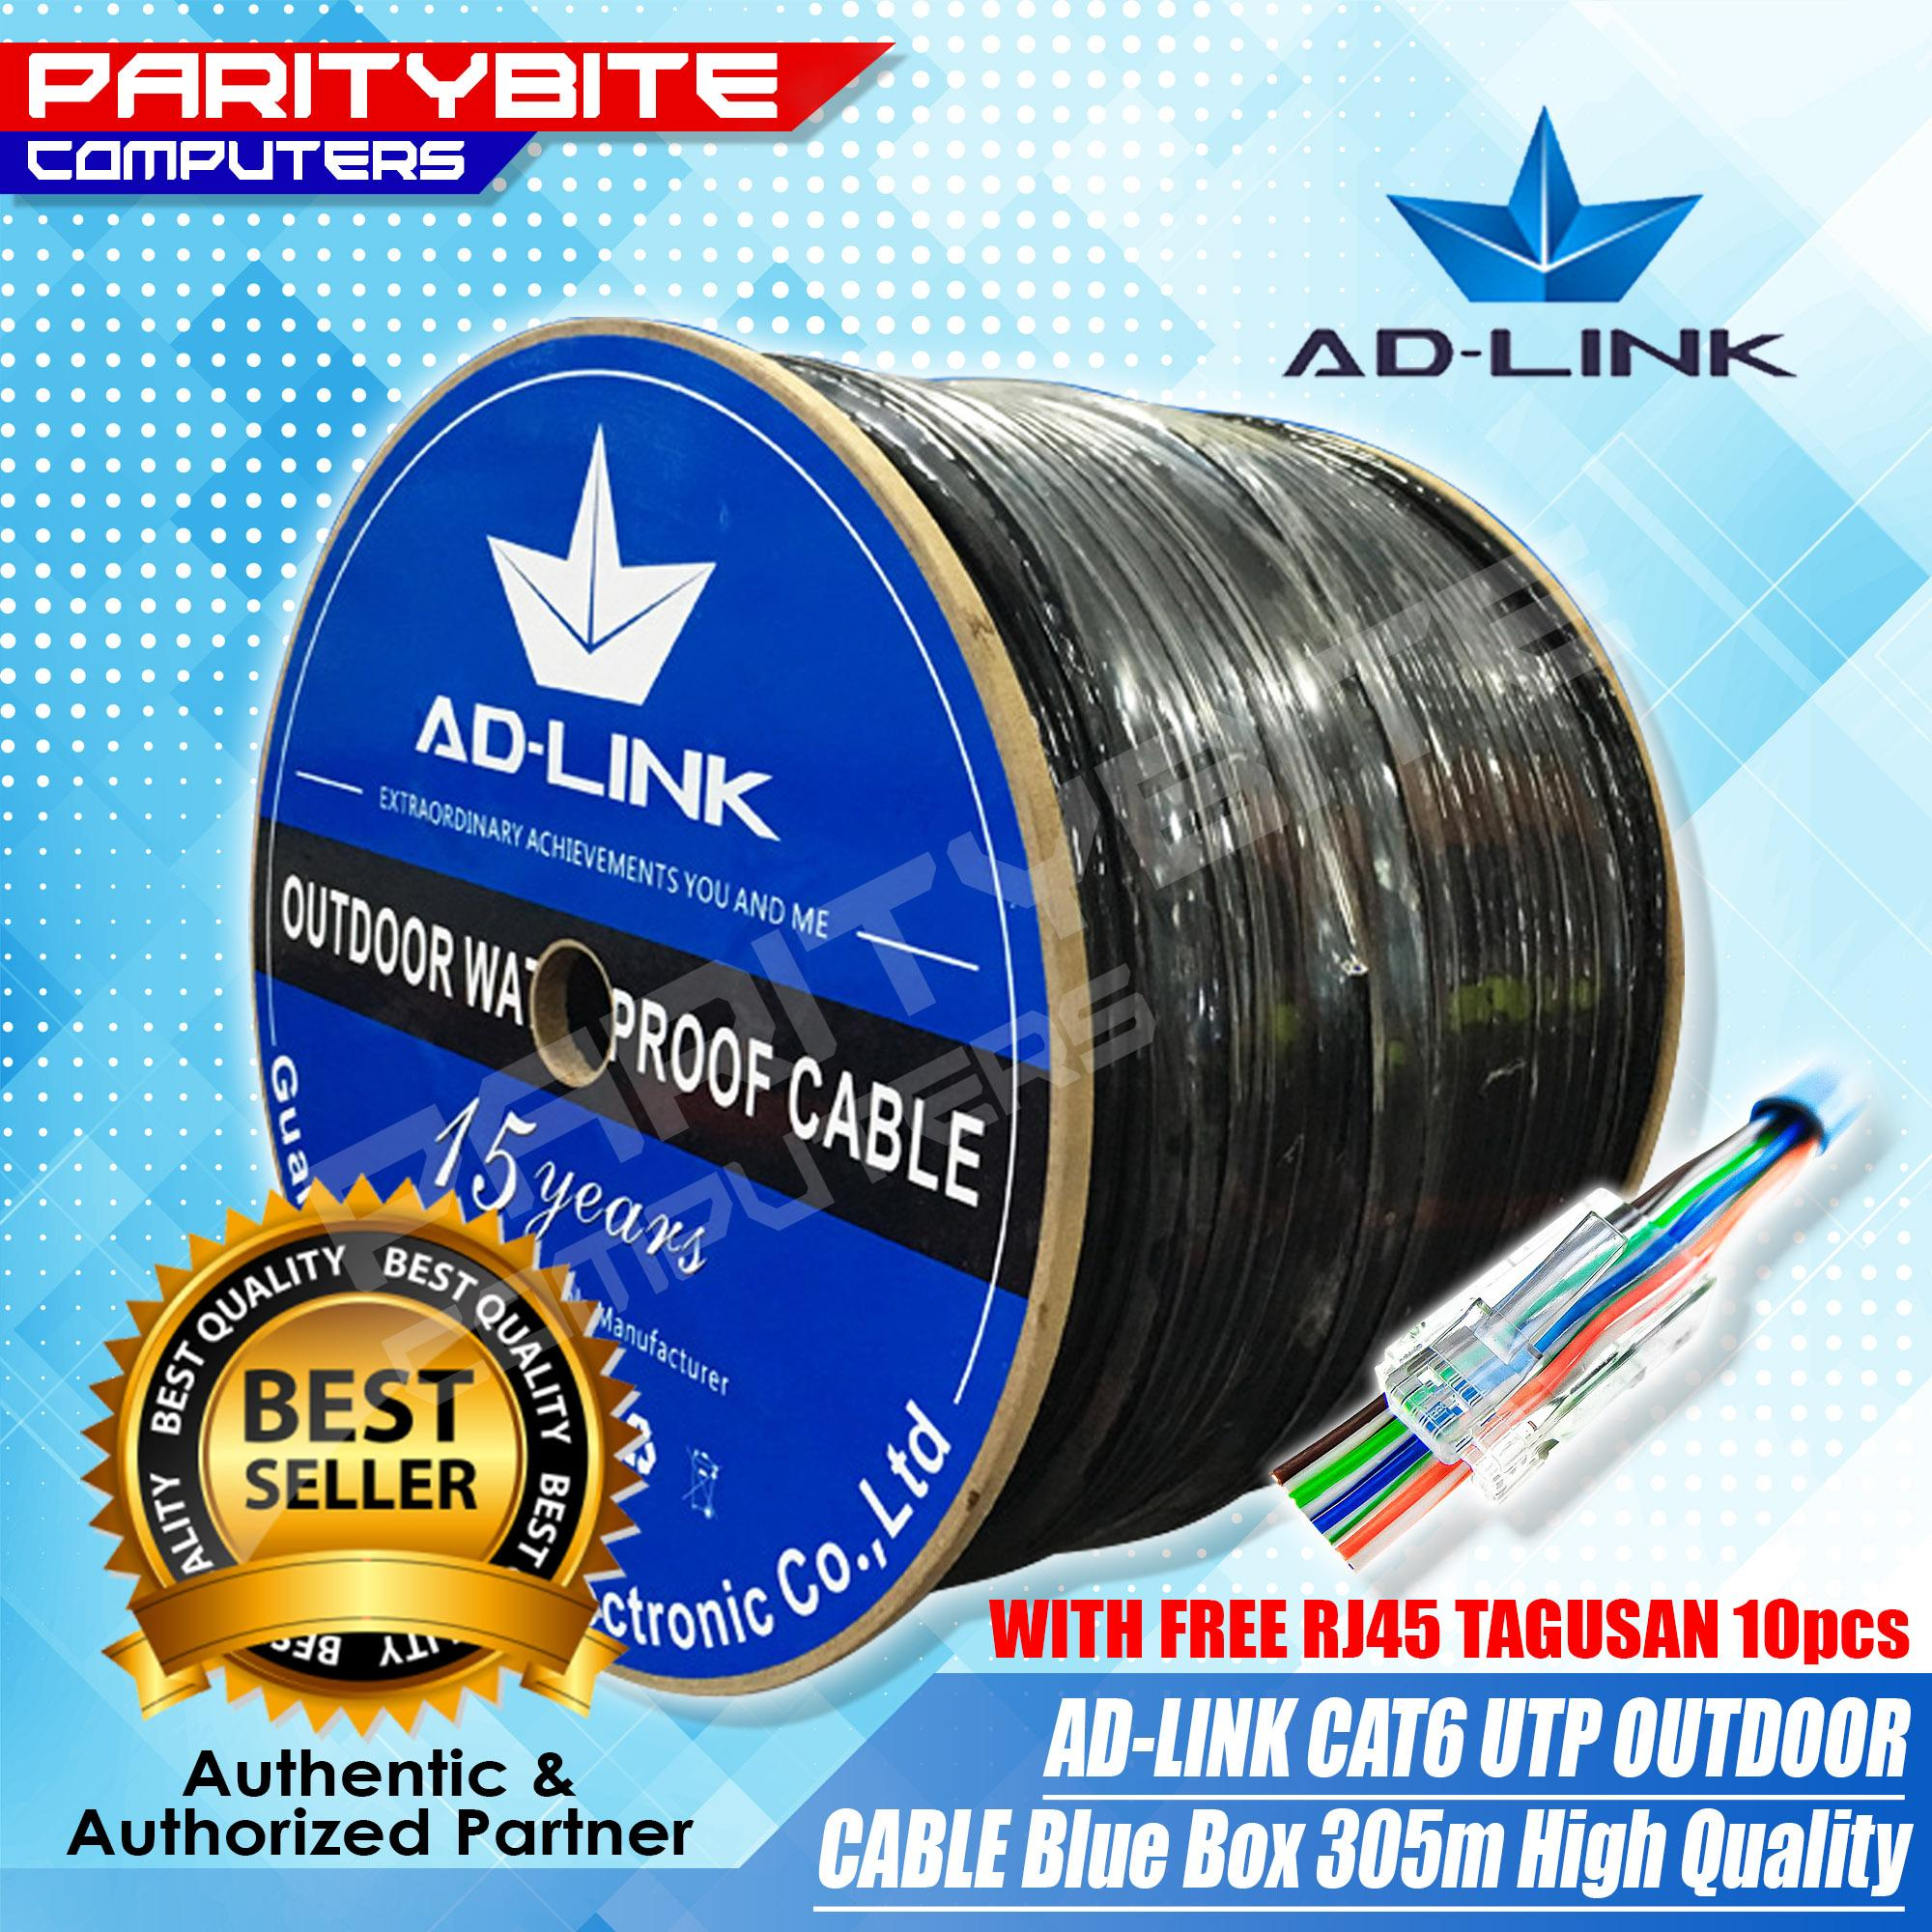 Ethernet Cable For Sale Etherner Adapters Prices Brands Specs Diy Wiring Ad Link Cat6 Outdoor Utp 305m High Quality